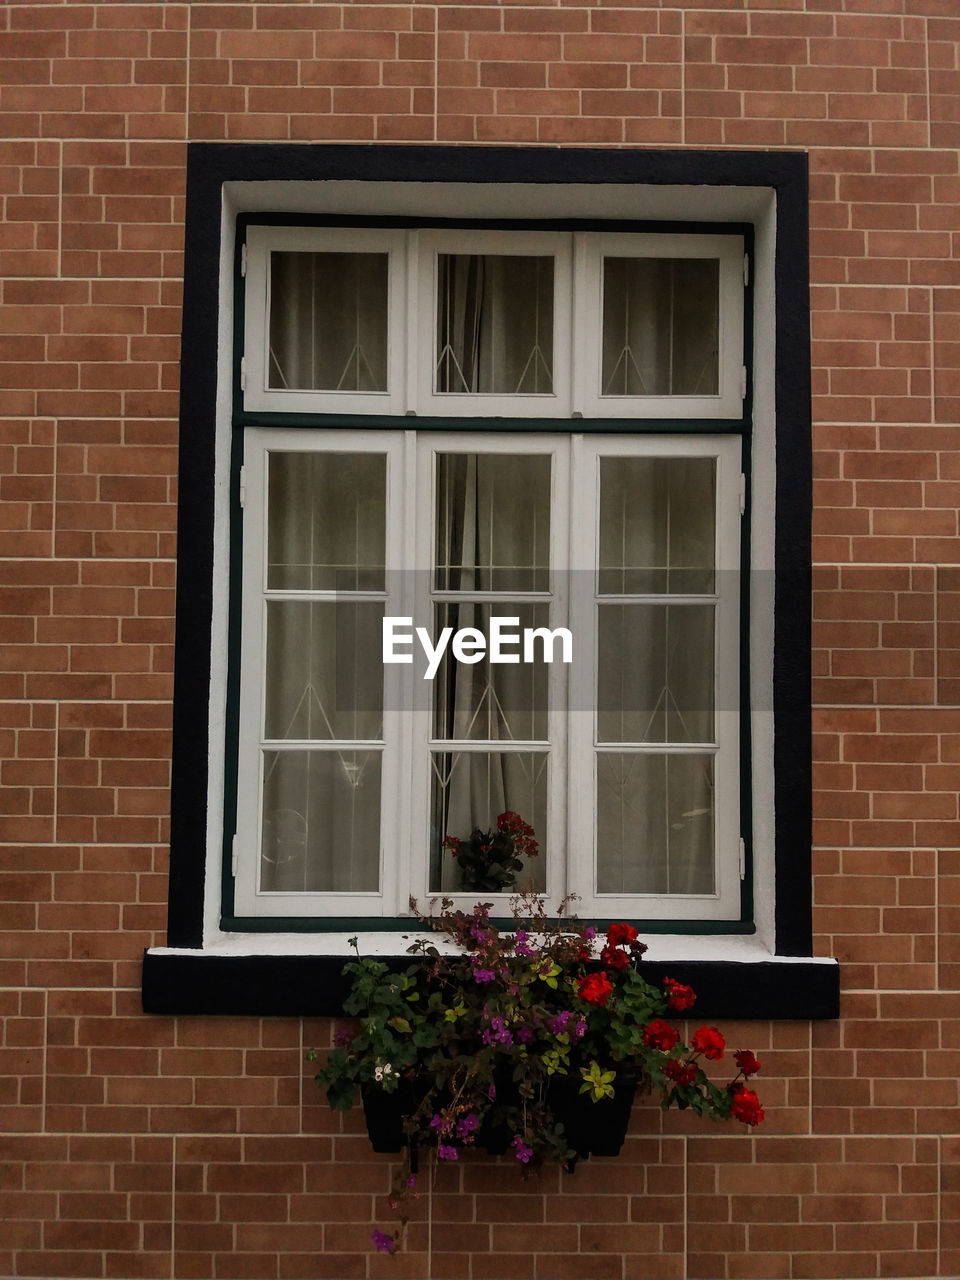 window, building exterior, flower, architecture, brick wall, built structure, house, day, outdoors, no people, fragility, window box, nature